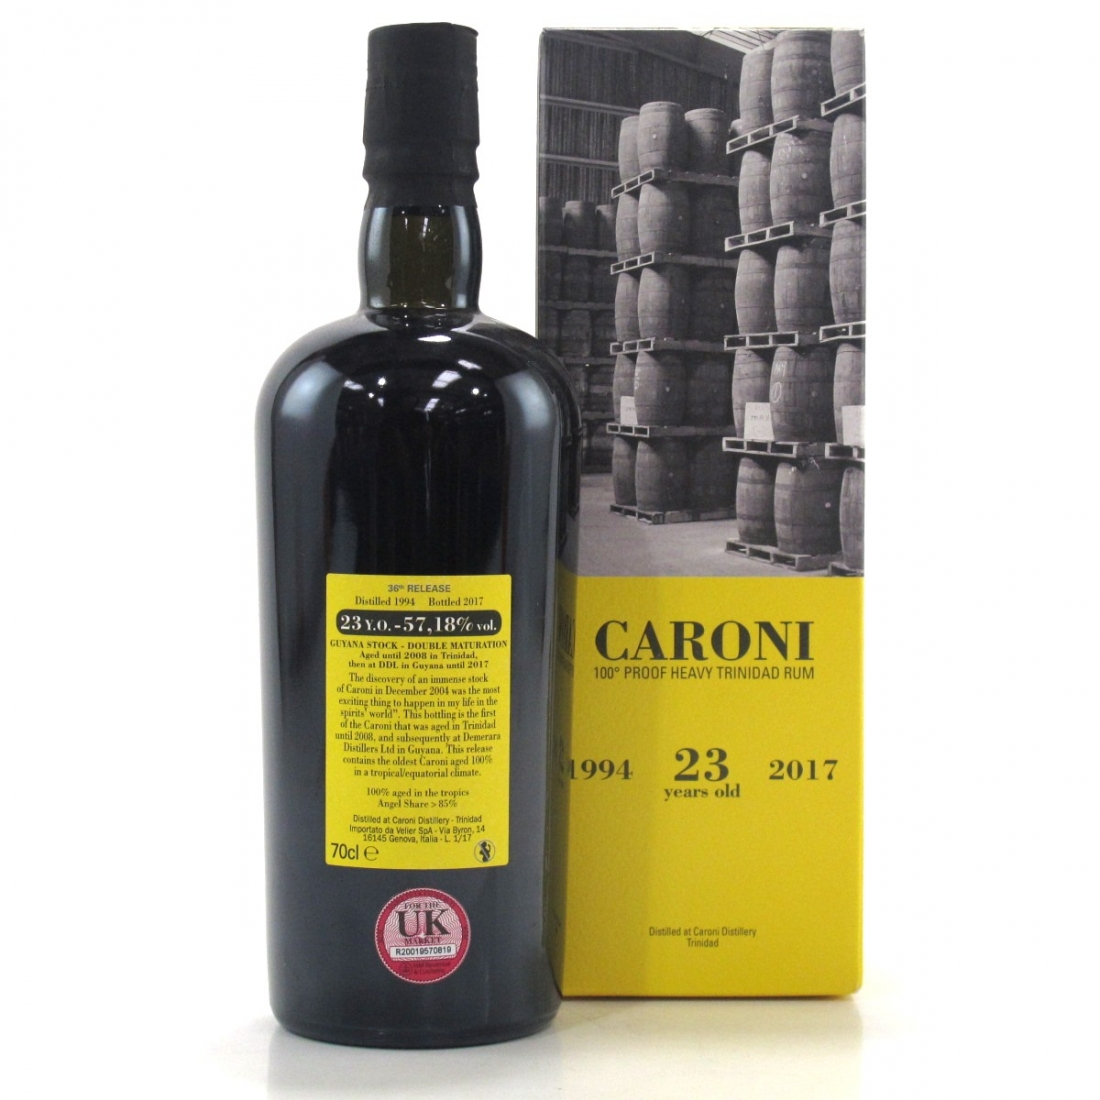 Caroni 1994 Guyana Stock 23 Year Old 100 Proof Heavy Trinidad Rum